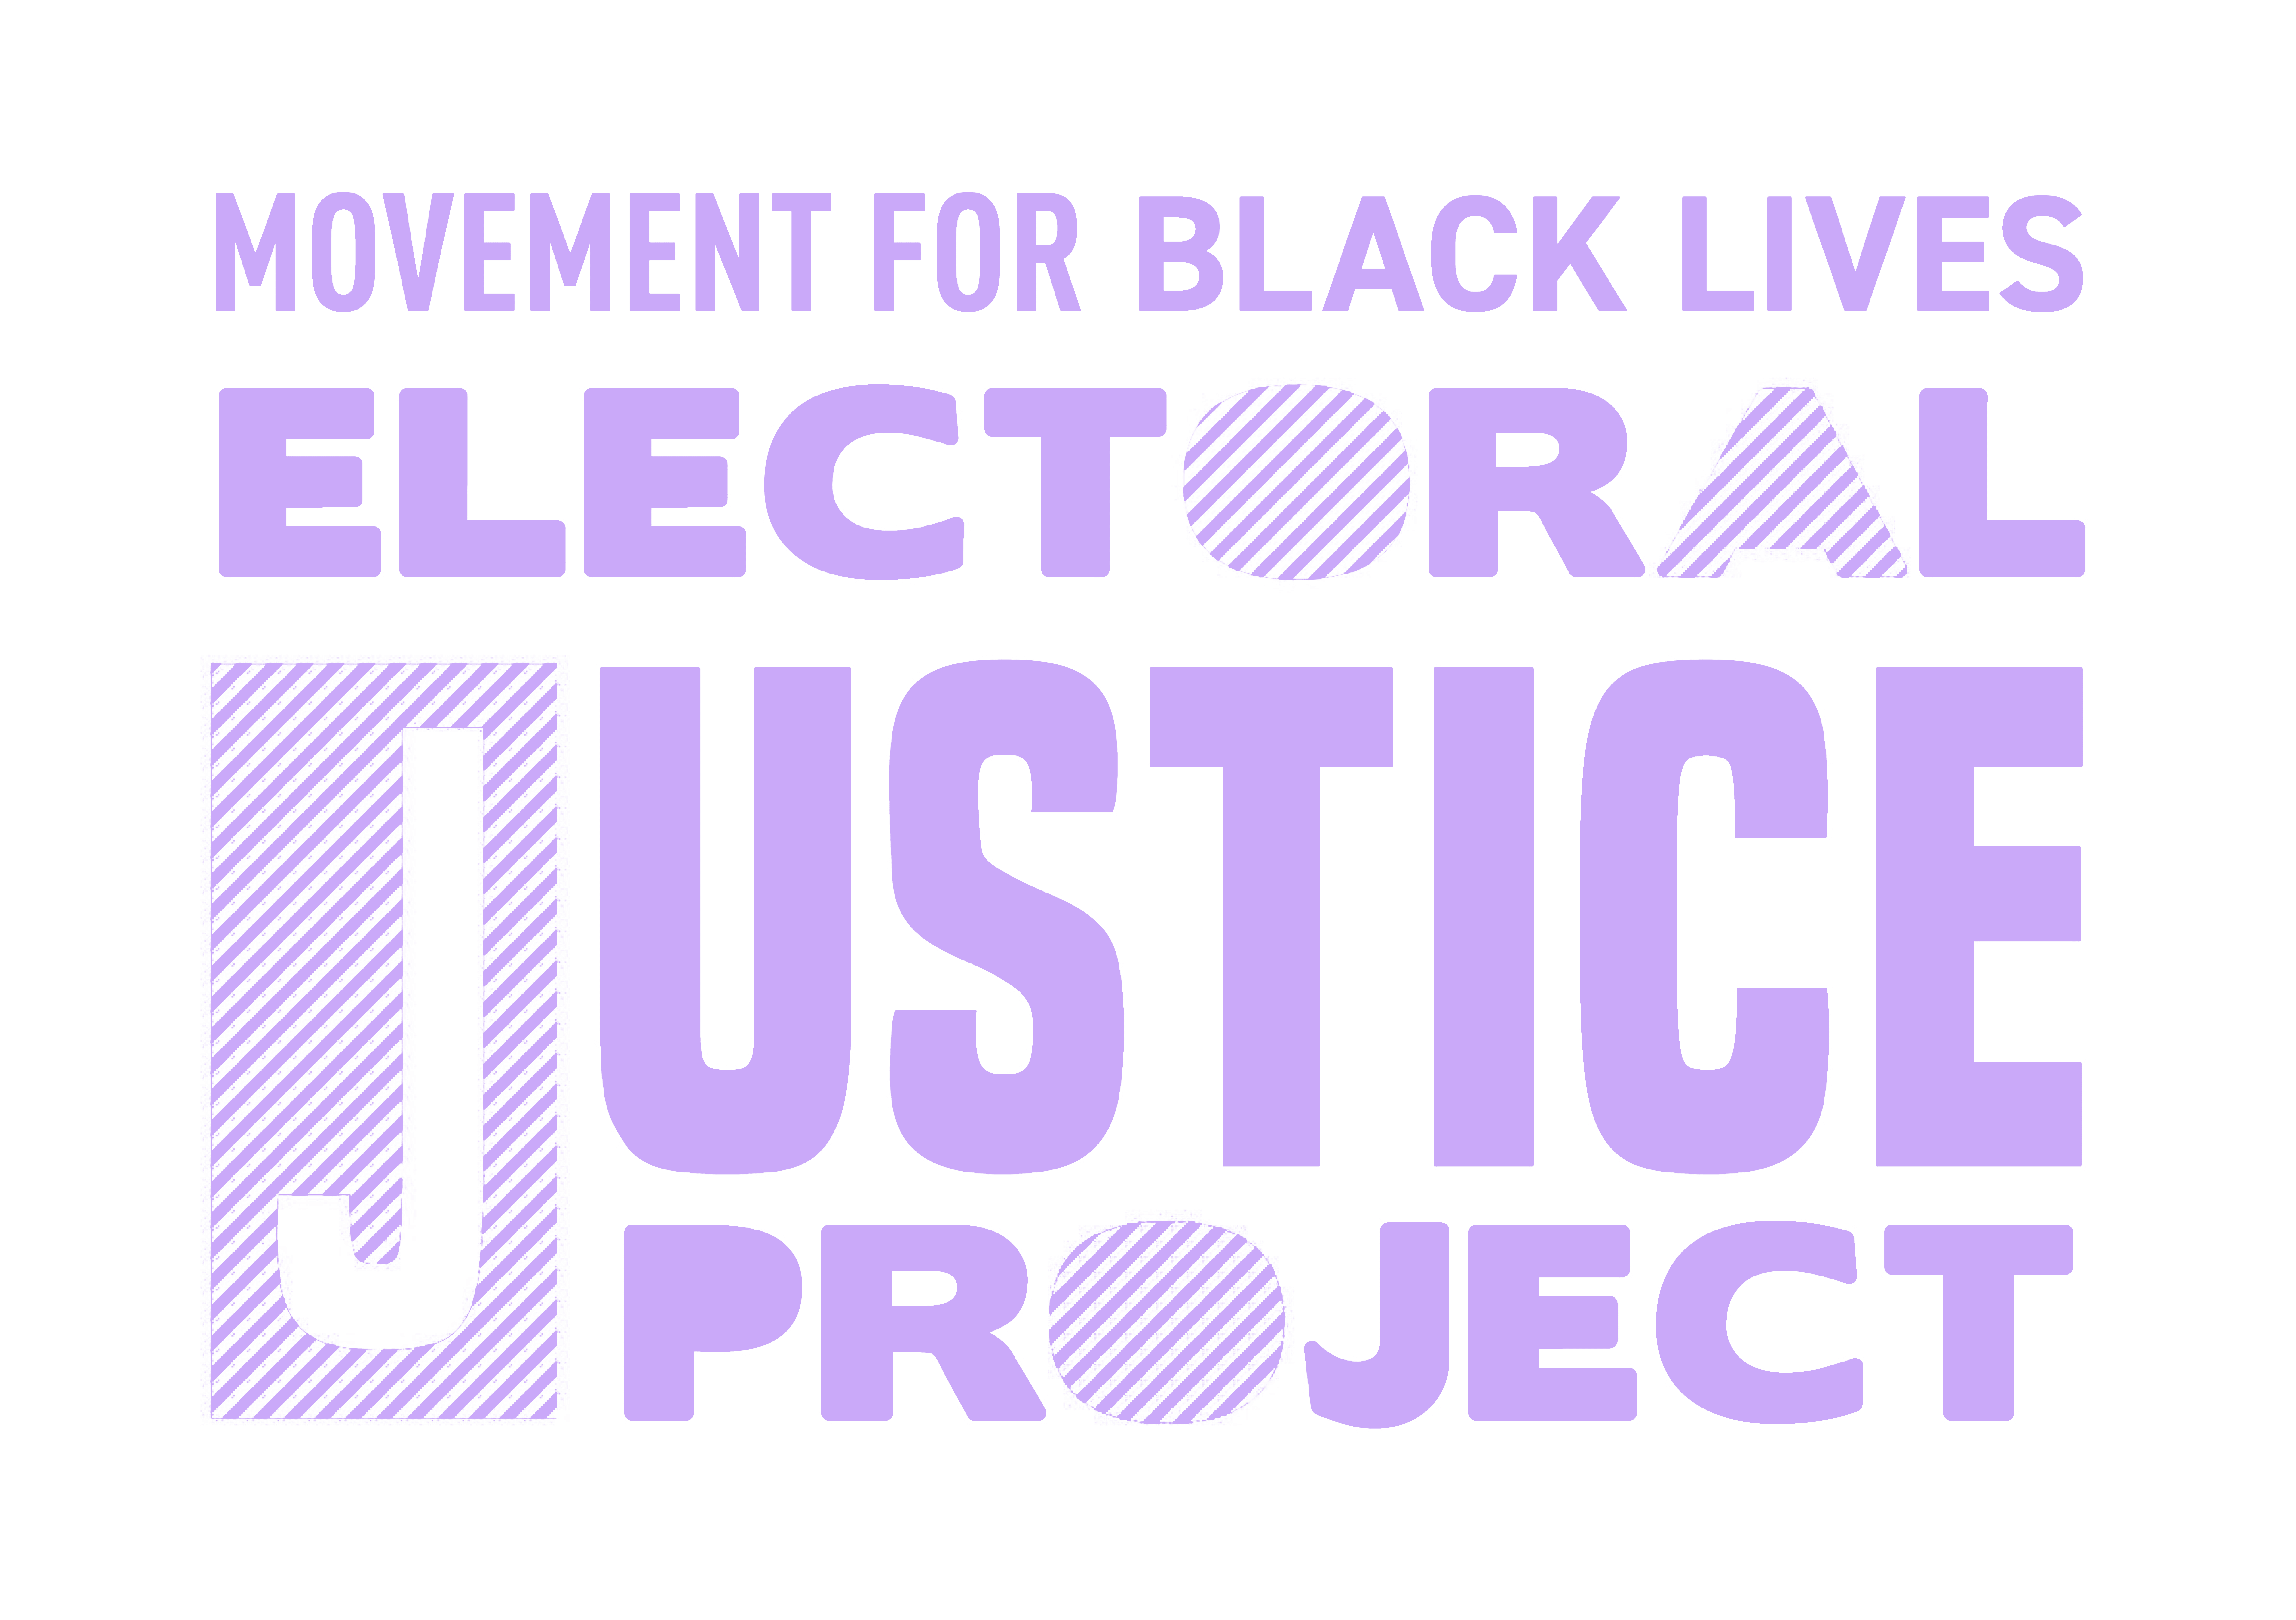 Movement for Black Lives Electoral Justice Project